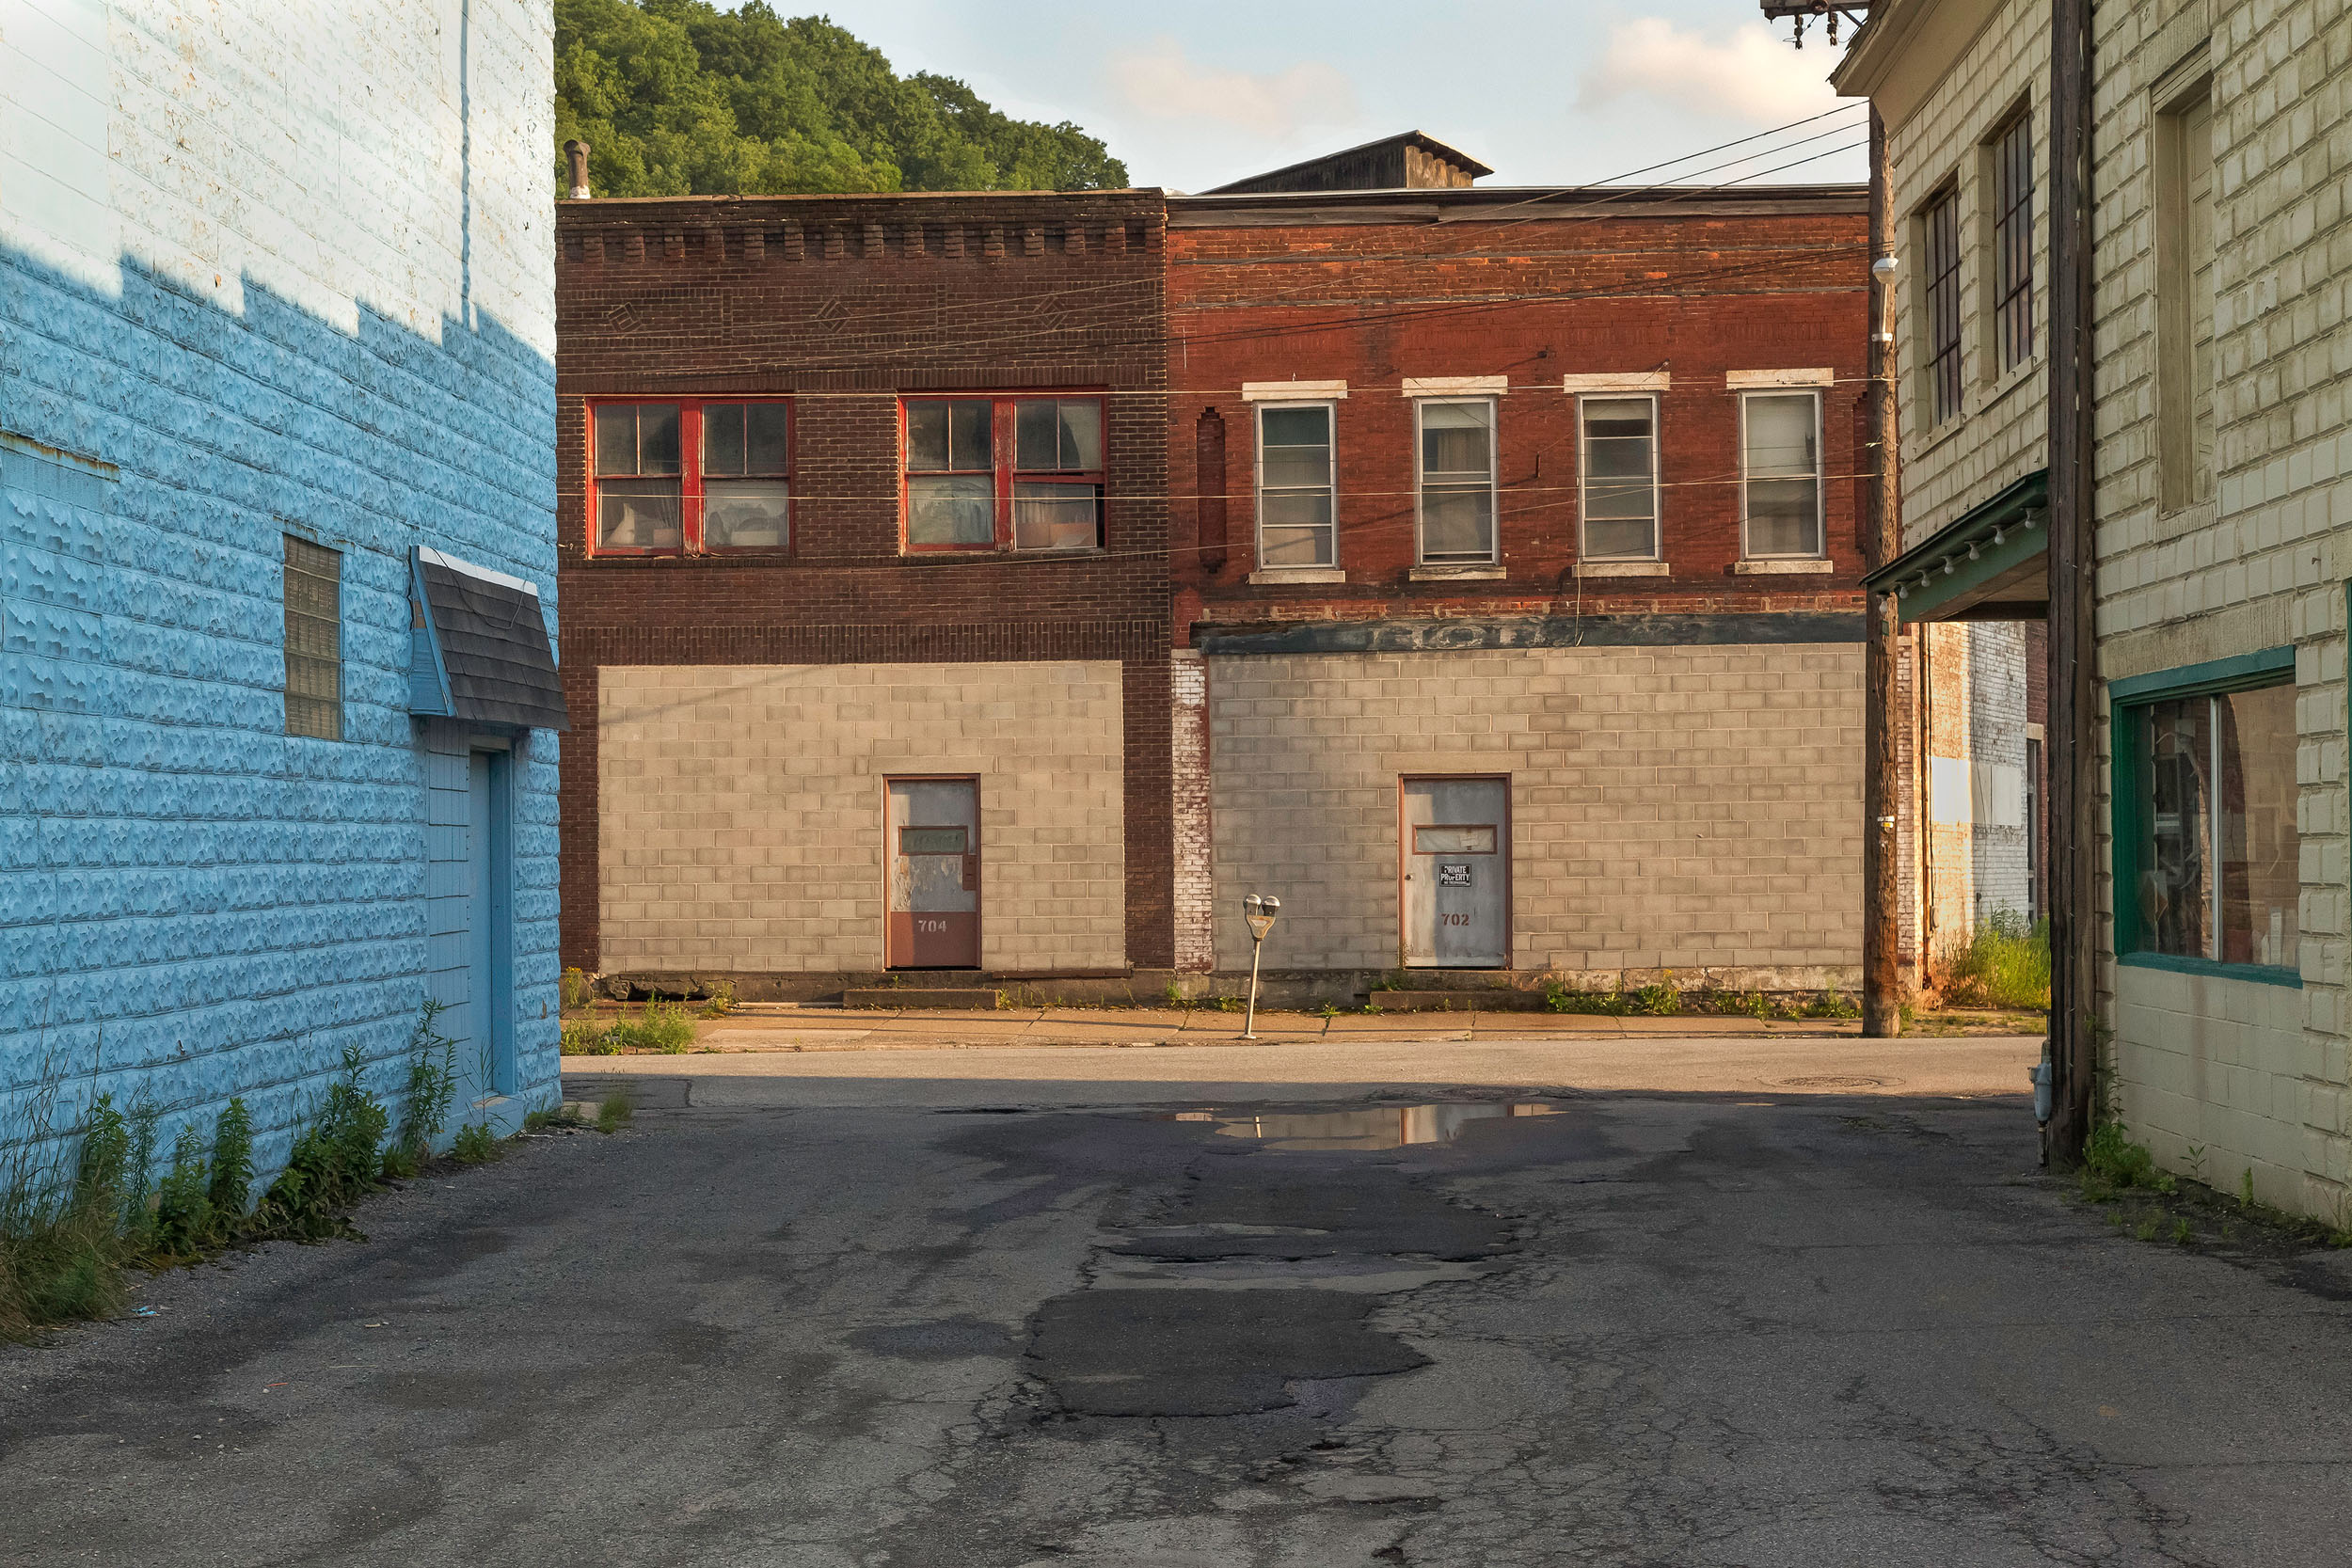 John Wyatt, Railroad St., Johnstown, PA, Johnstown, PA, 2013 29.5 x 23.38 inches